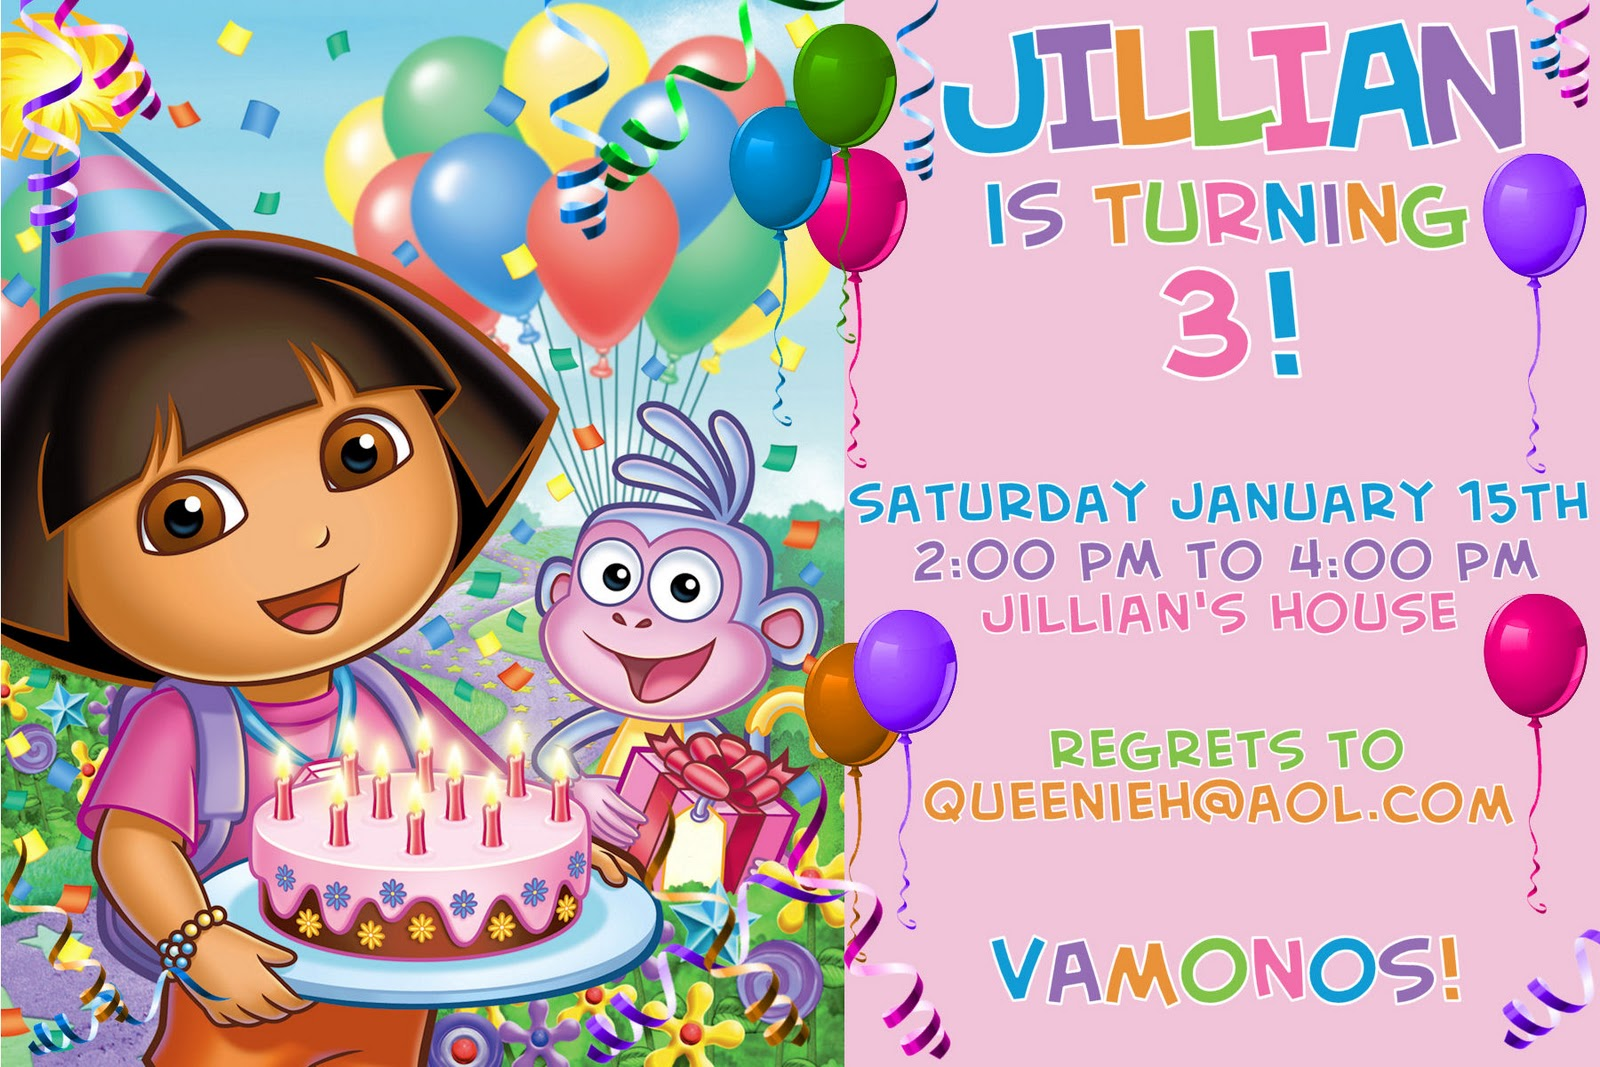 dora colors for birthday party ; others-interesting-3rd-birthday-party-invitation-card-with-dora-the-explorer-and-cute-ballon